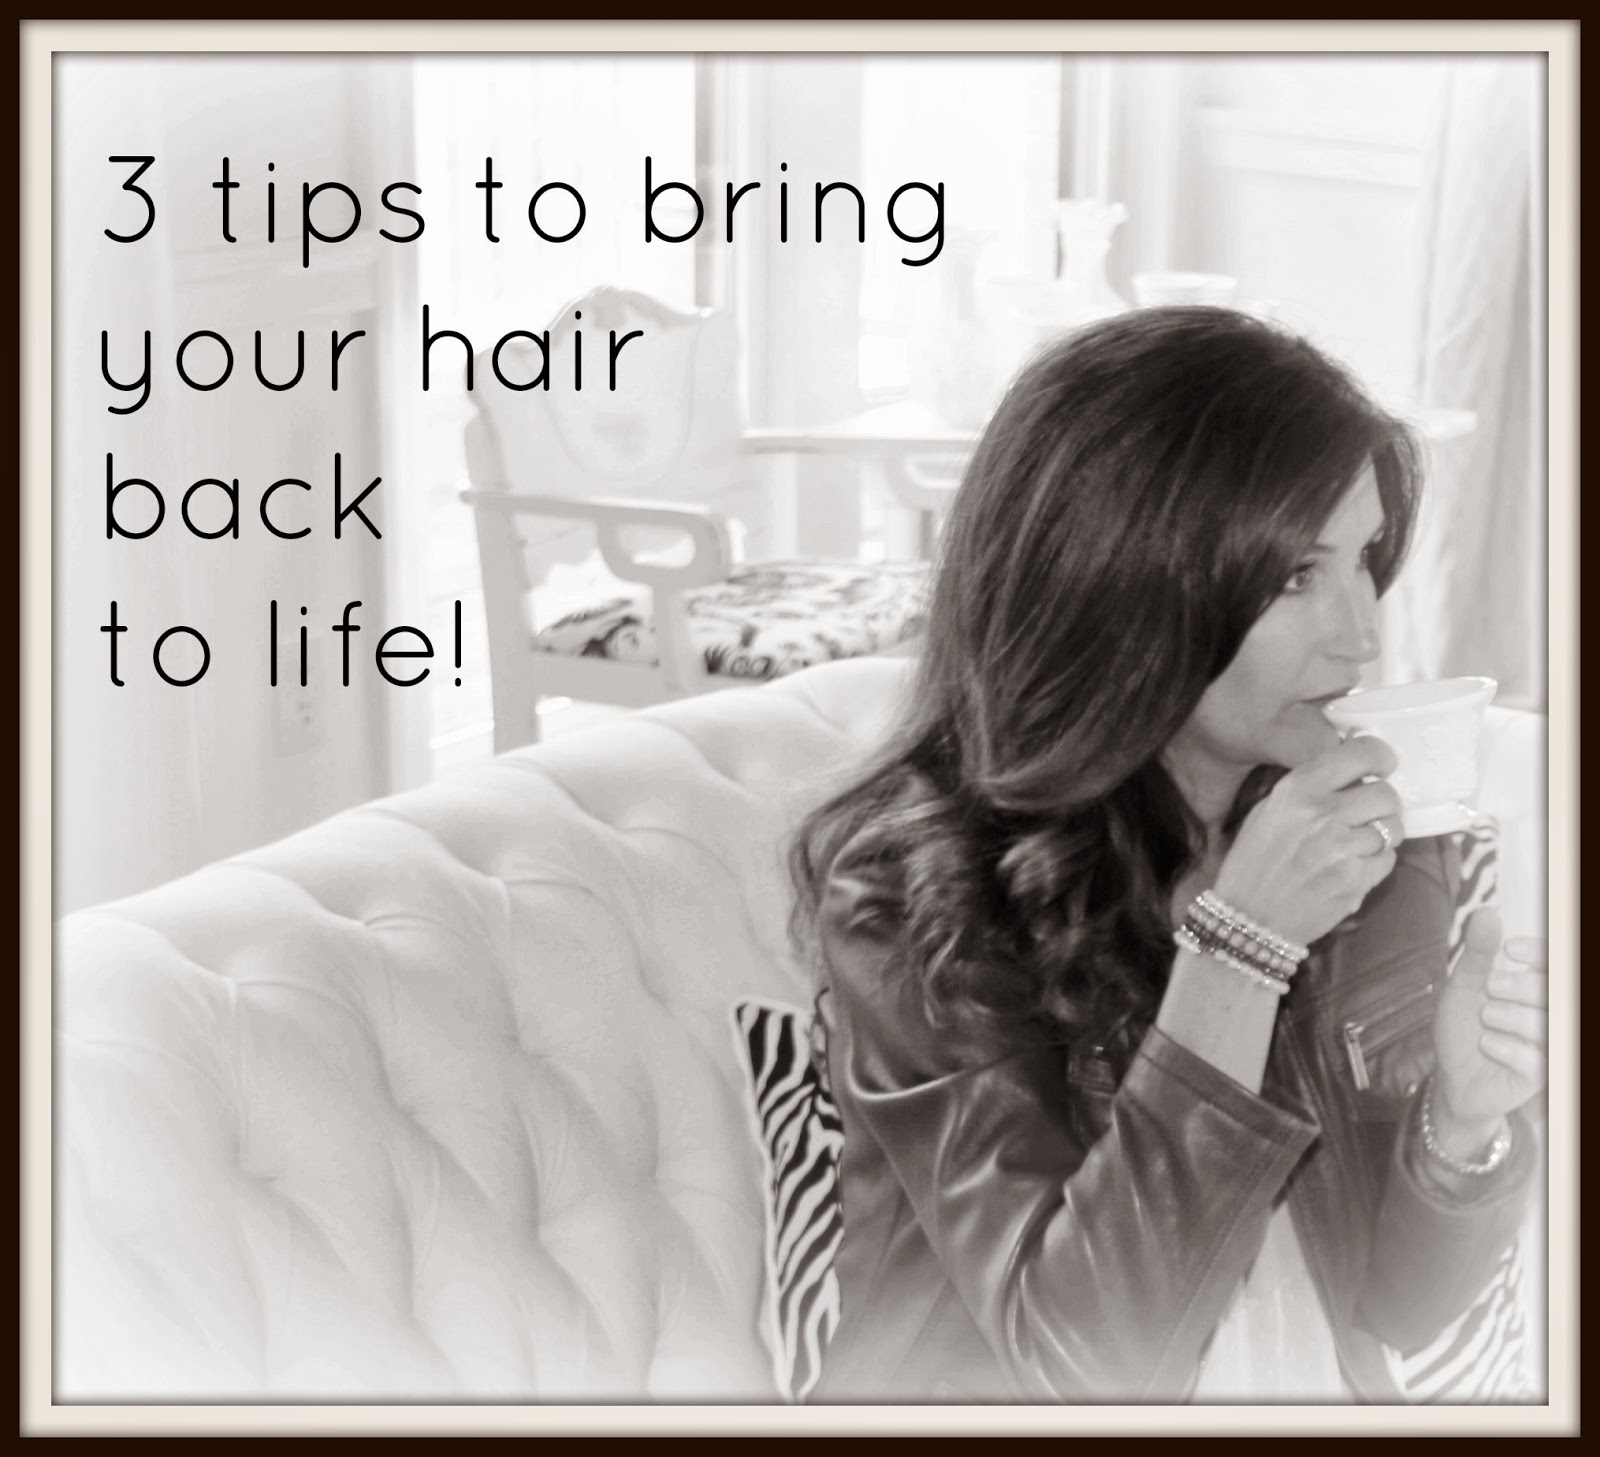 Is Your Hair Weighing You Down?